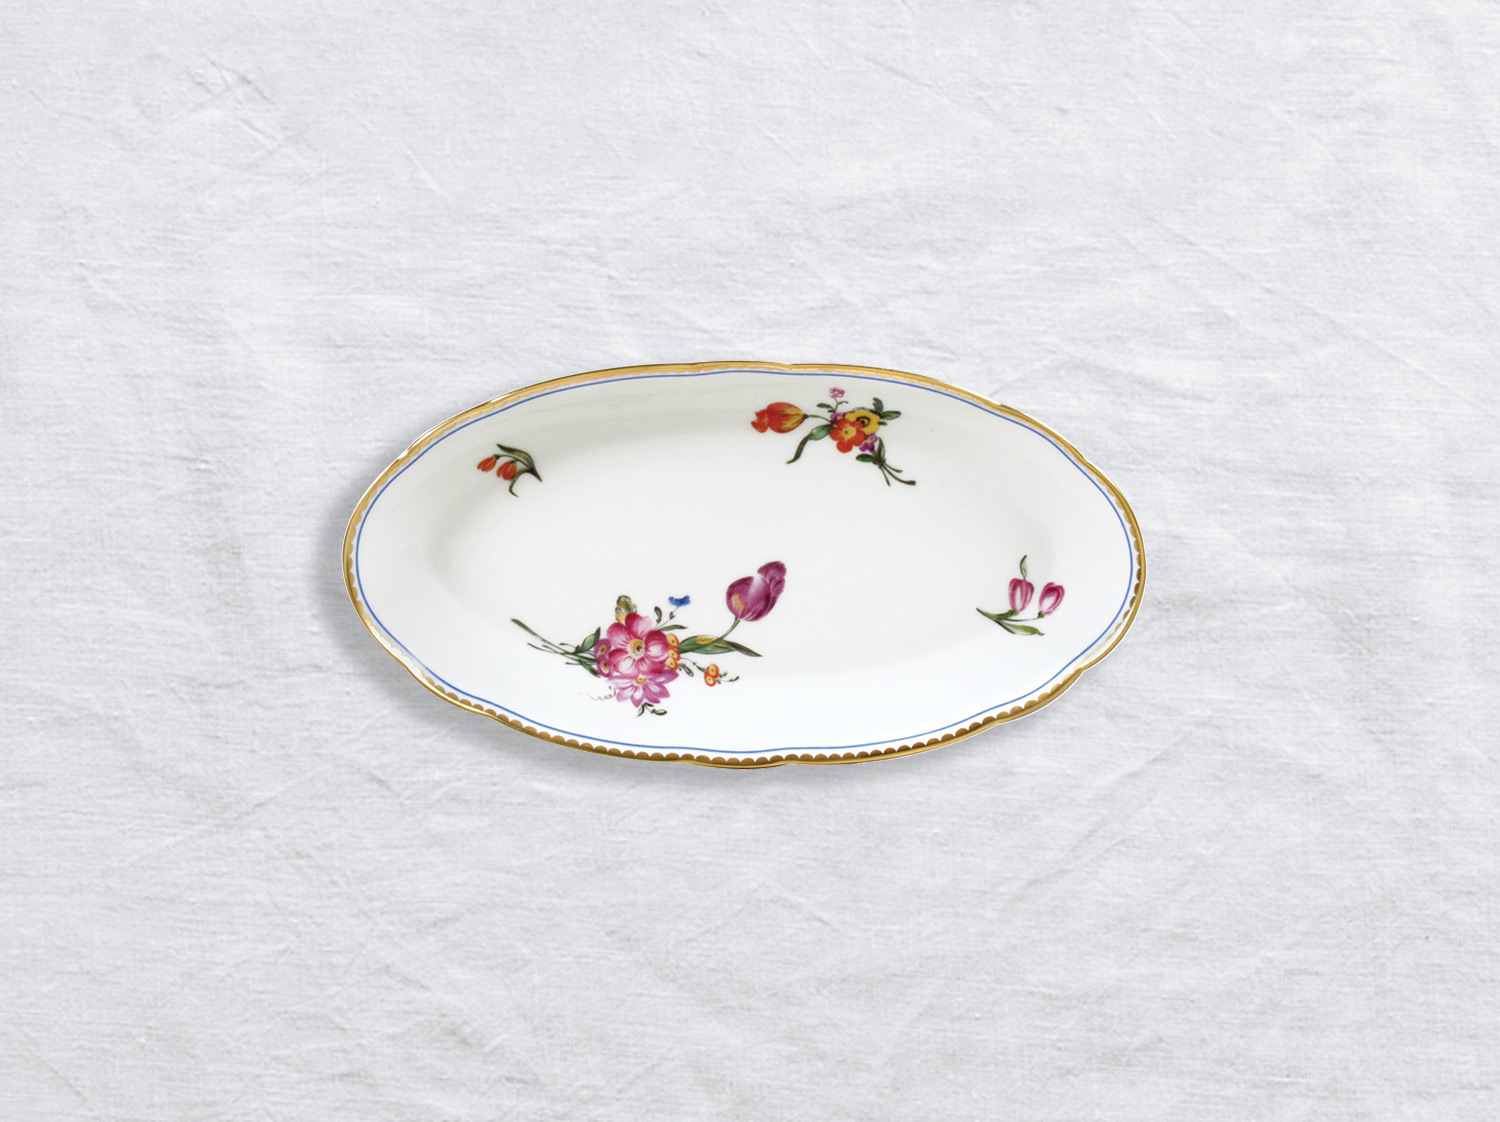 Ravier 21 x 15 cm en porcelaine de la collection A la reine Bernardaud